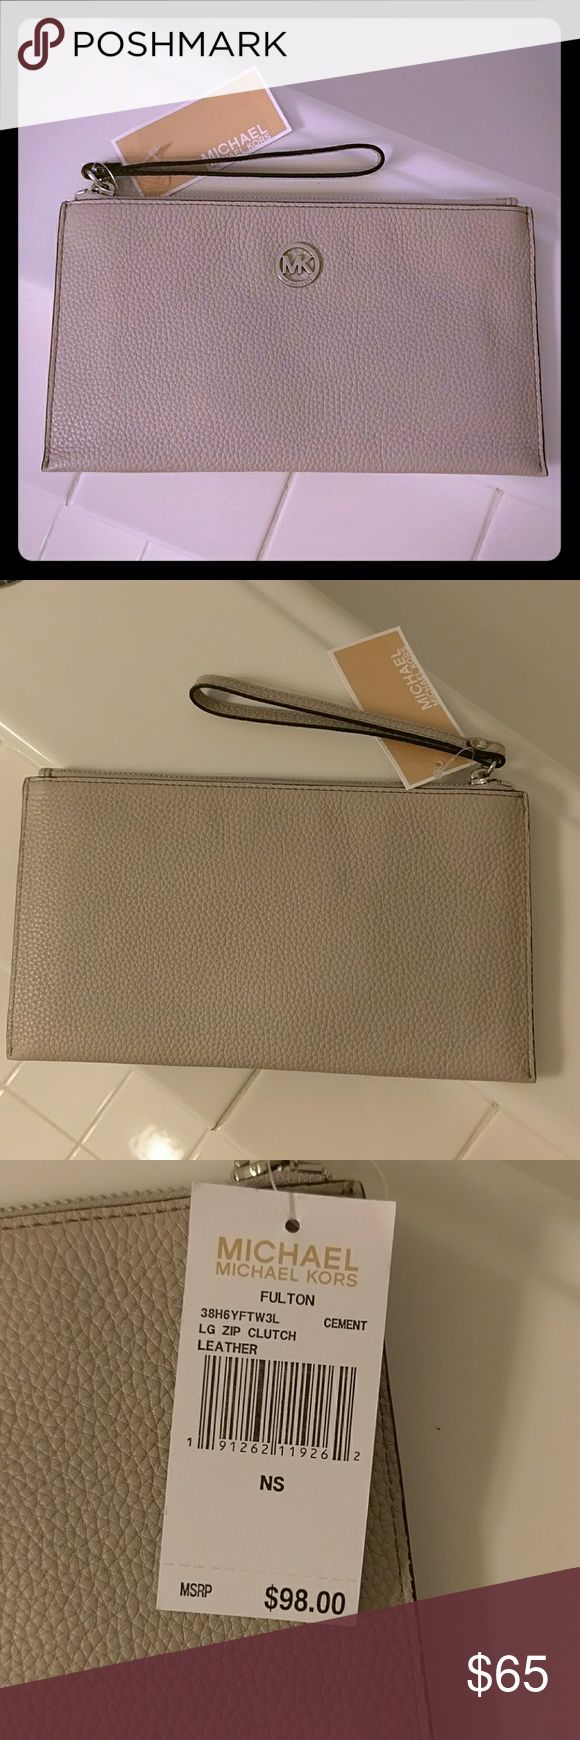 NEW Michael Kors wristlet New with tags light gray wristlet. Inside it has 6 slots for cc, one larger pocket. Approx. 10X6. No trades. Michael Kors Collection Bags Clutches & Wristlets